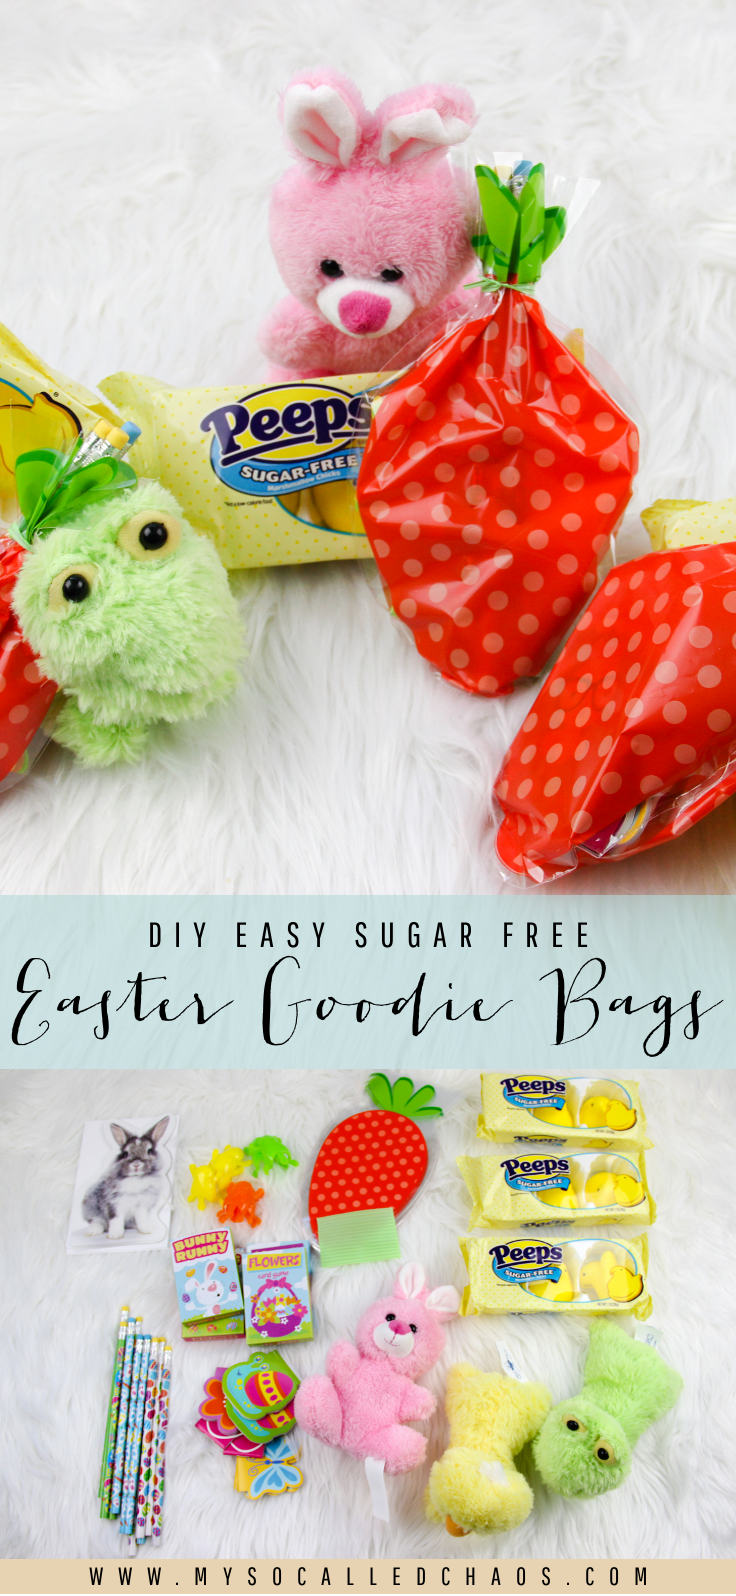 Diy pinterest easter gift bags sugar intake and goodie bags diy easy sugar free easter goodie bags with sugar free peeps want to give a cute easter gift without upping the sugar intake have a little diabetic who negle